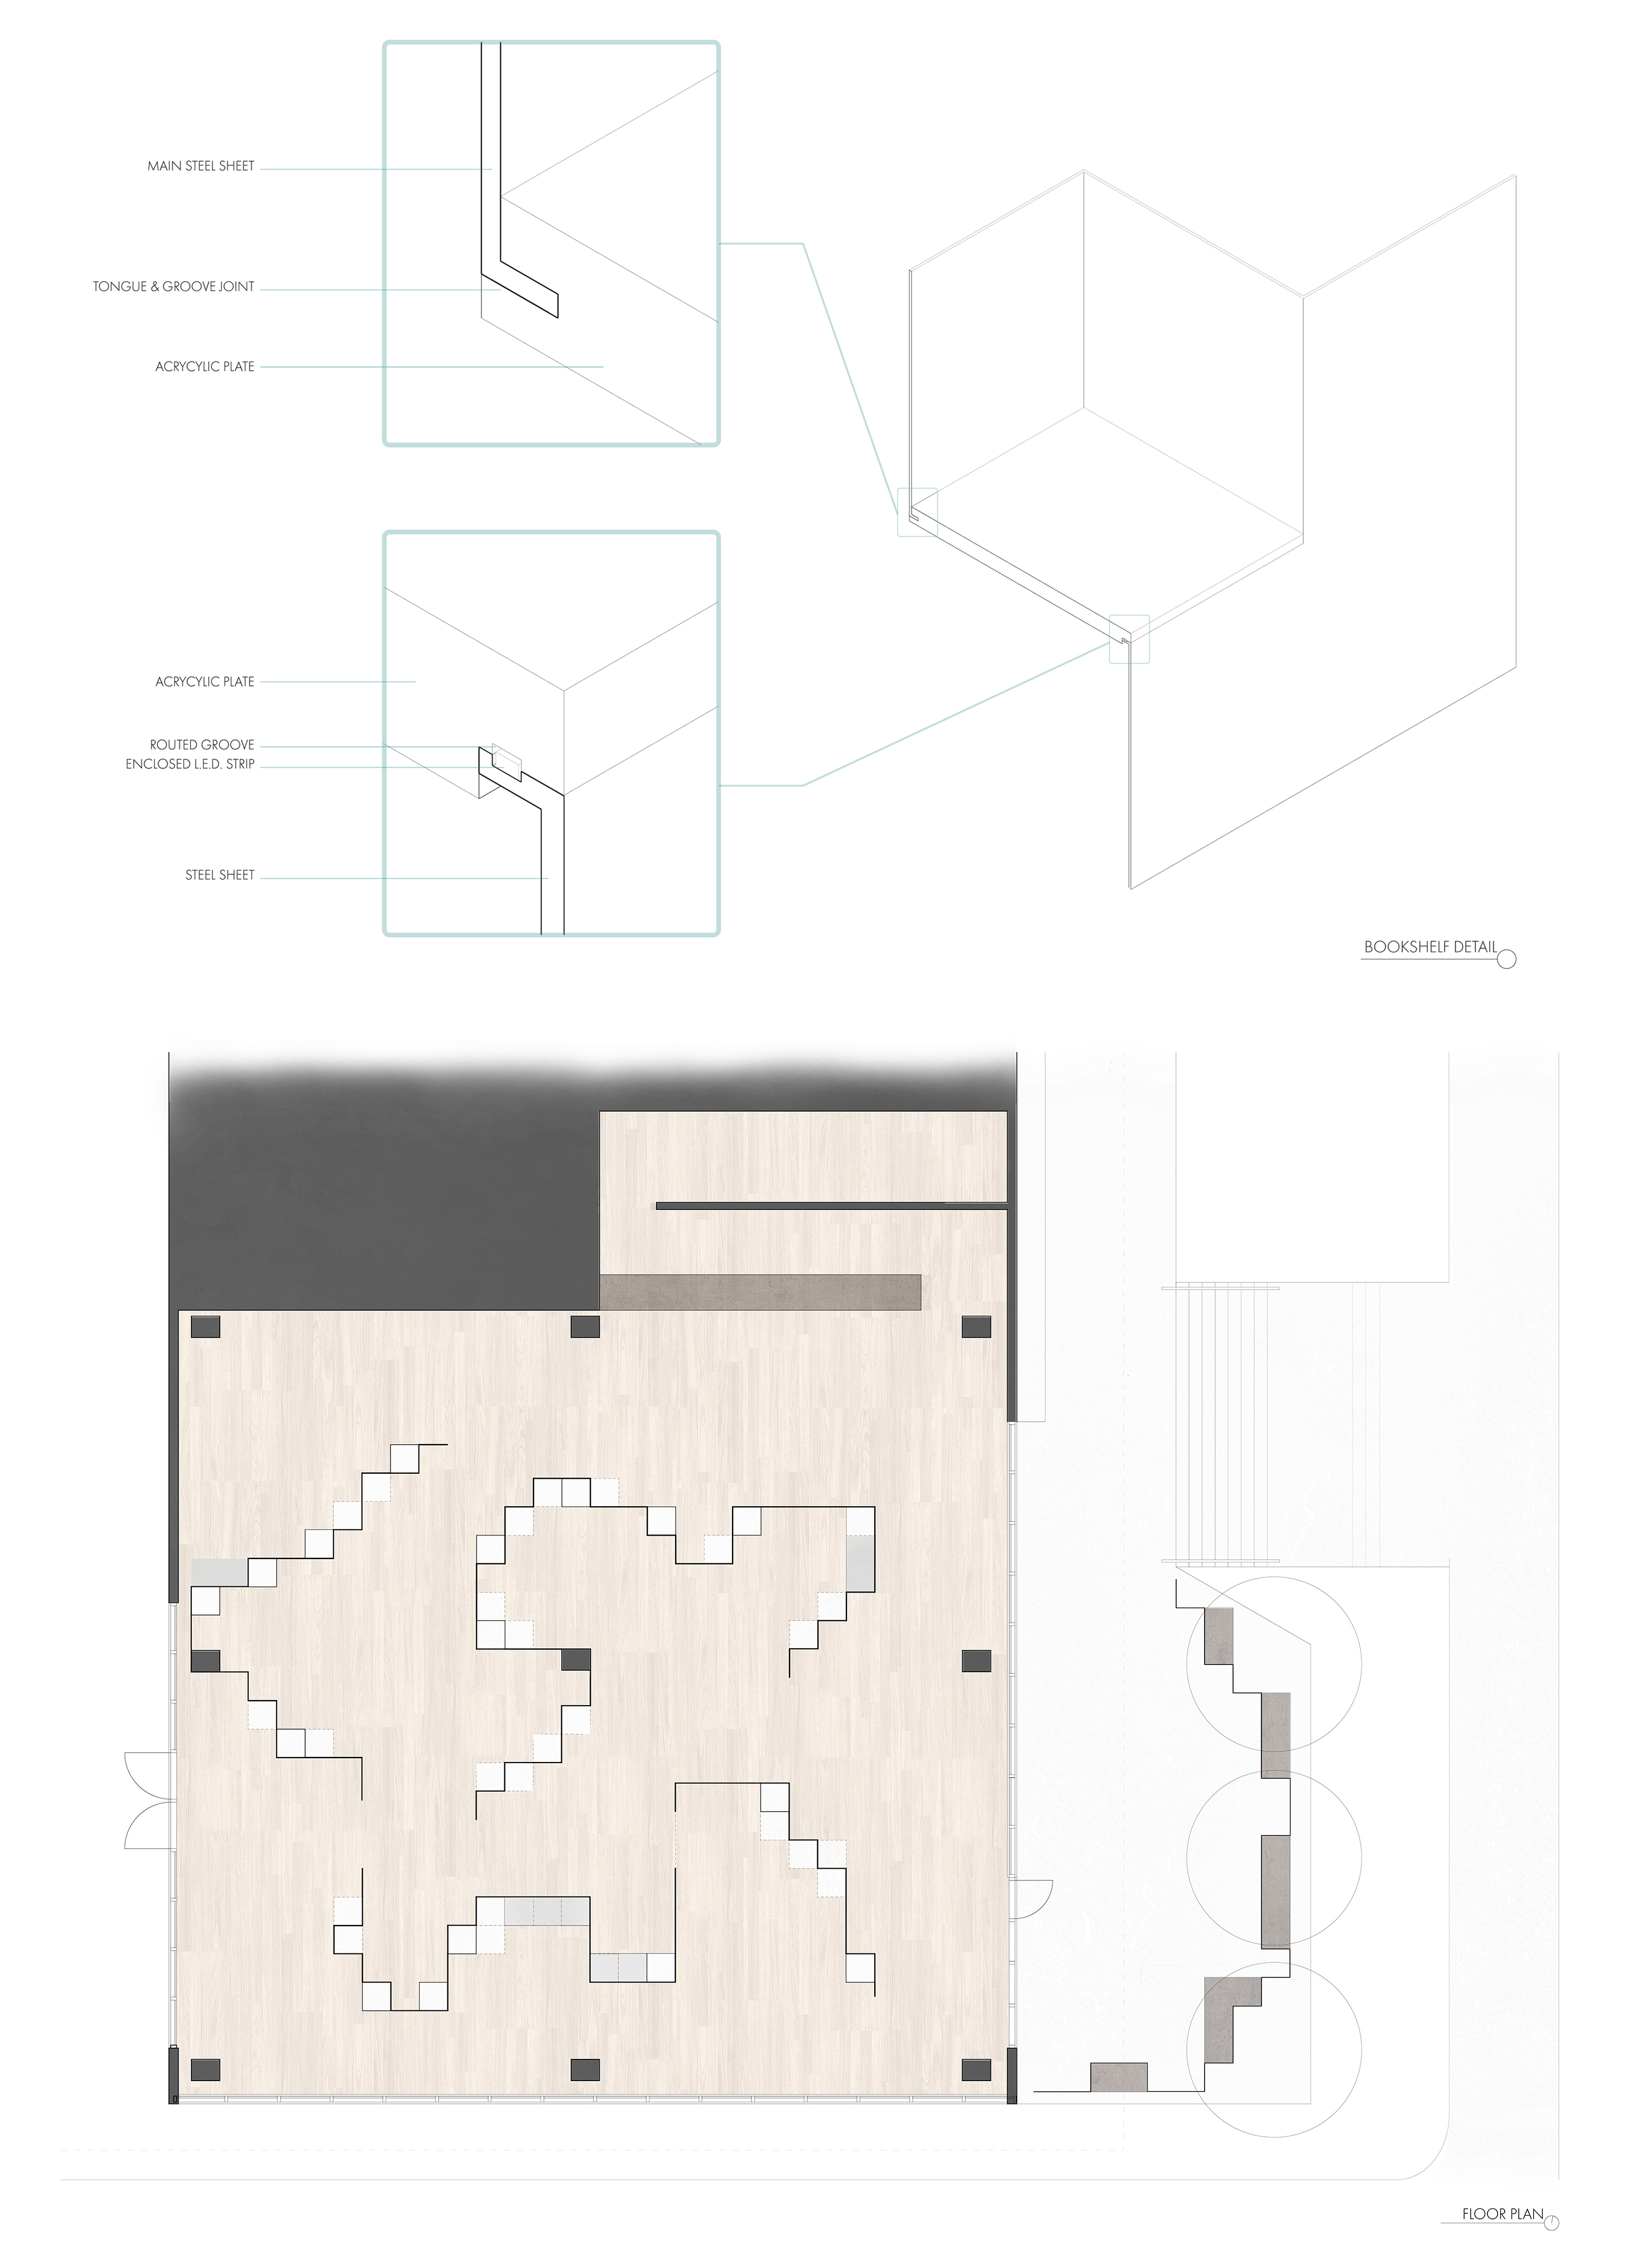 Bookstore Plan + Shelf Detail